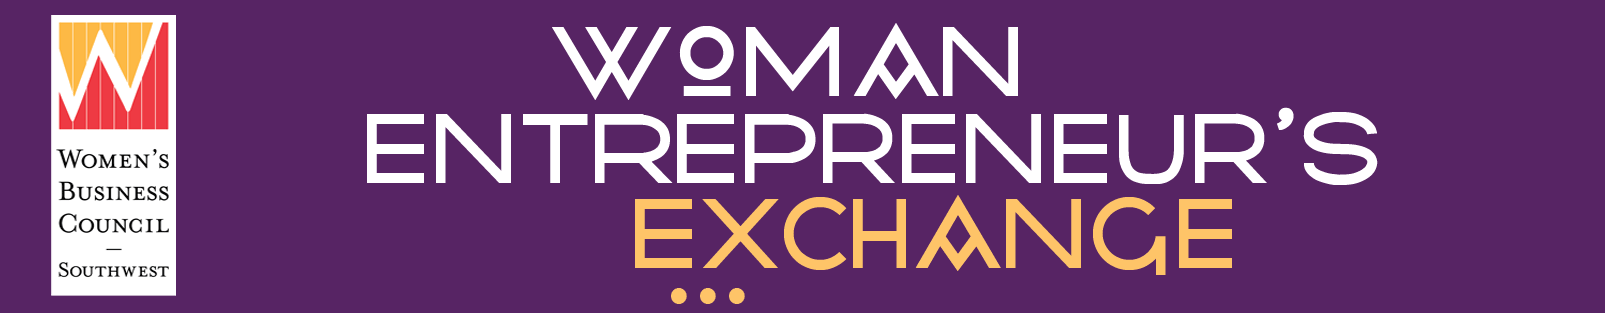 2017 July Woman Entrepreneur's Exchange